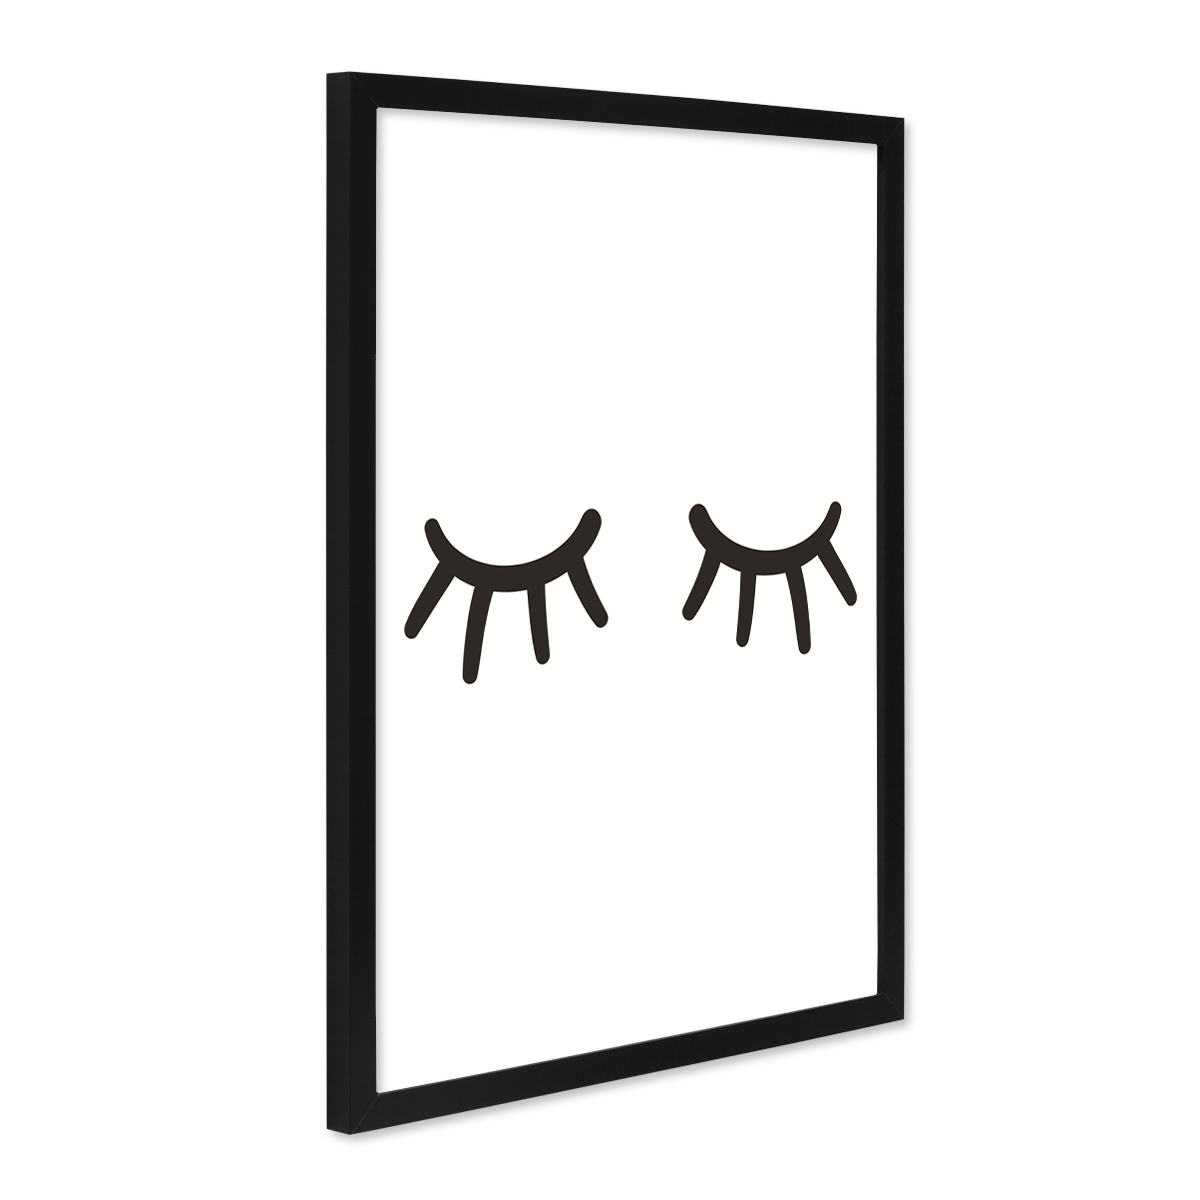 poster mit bilderrahmen schwarz 39 closed eyes 39 30x40 cm schwarz weiss motiv augen minimalistisch. Black Bedroom Furniture Sets. Home Design Ideas